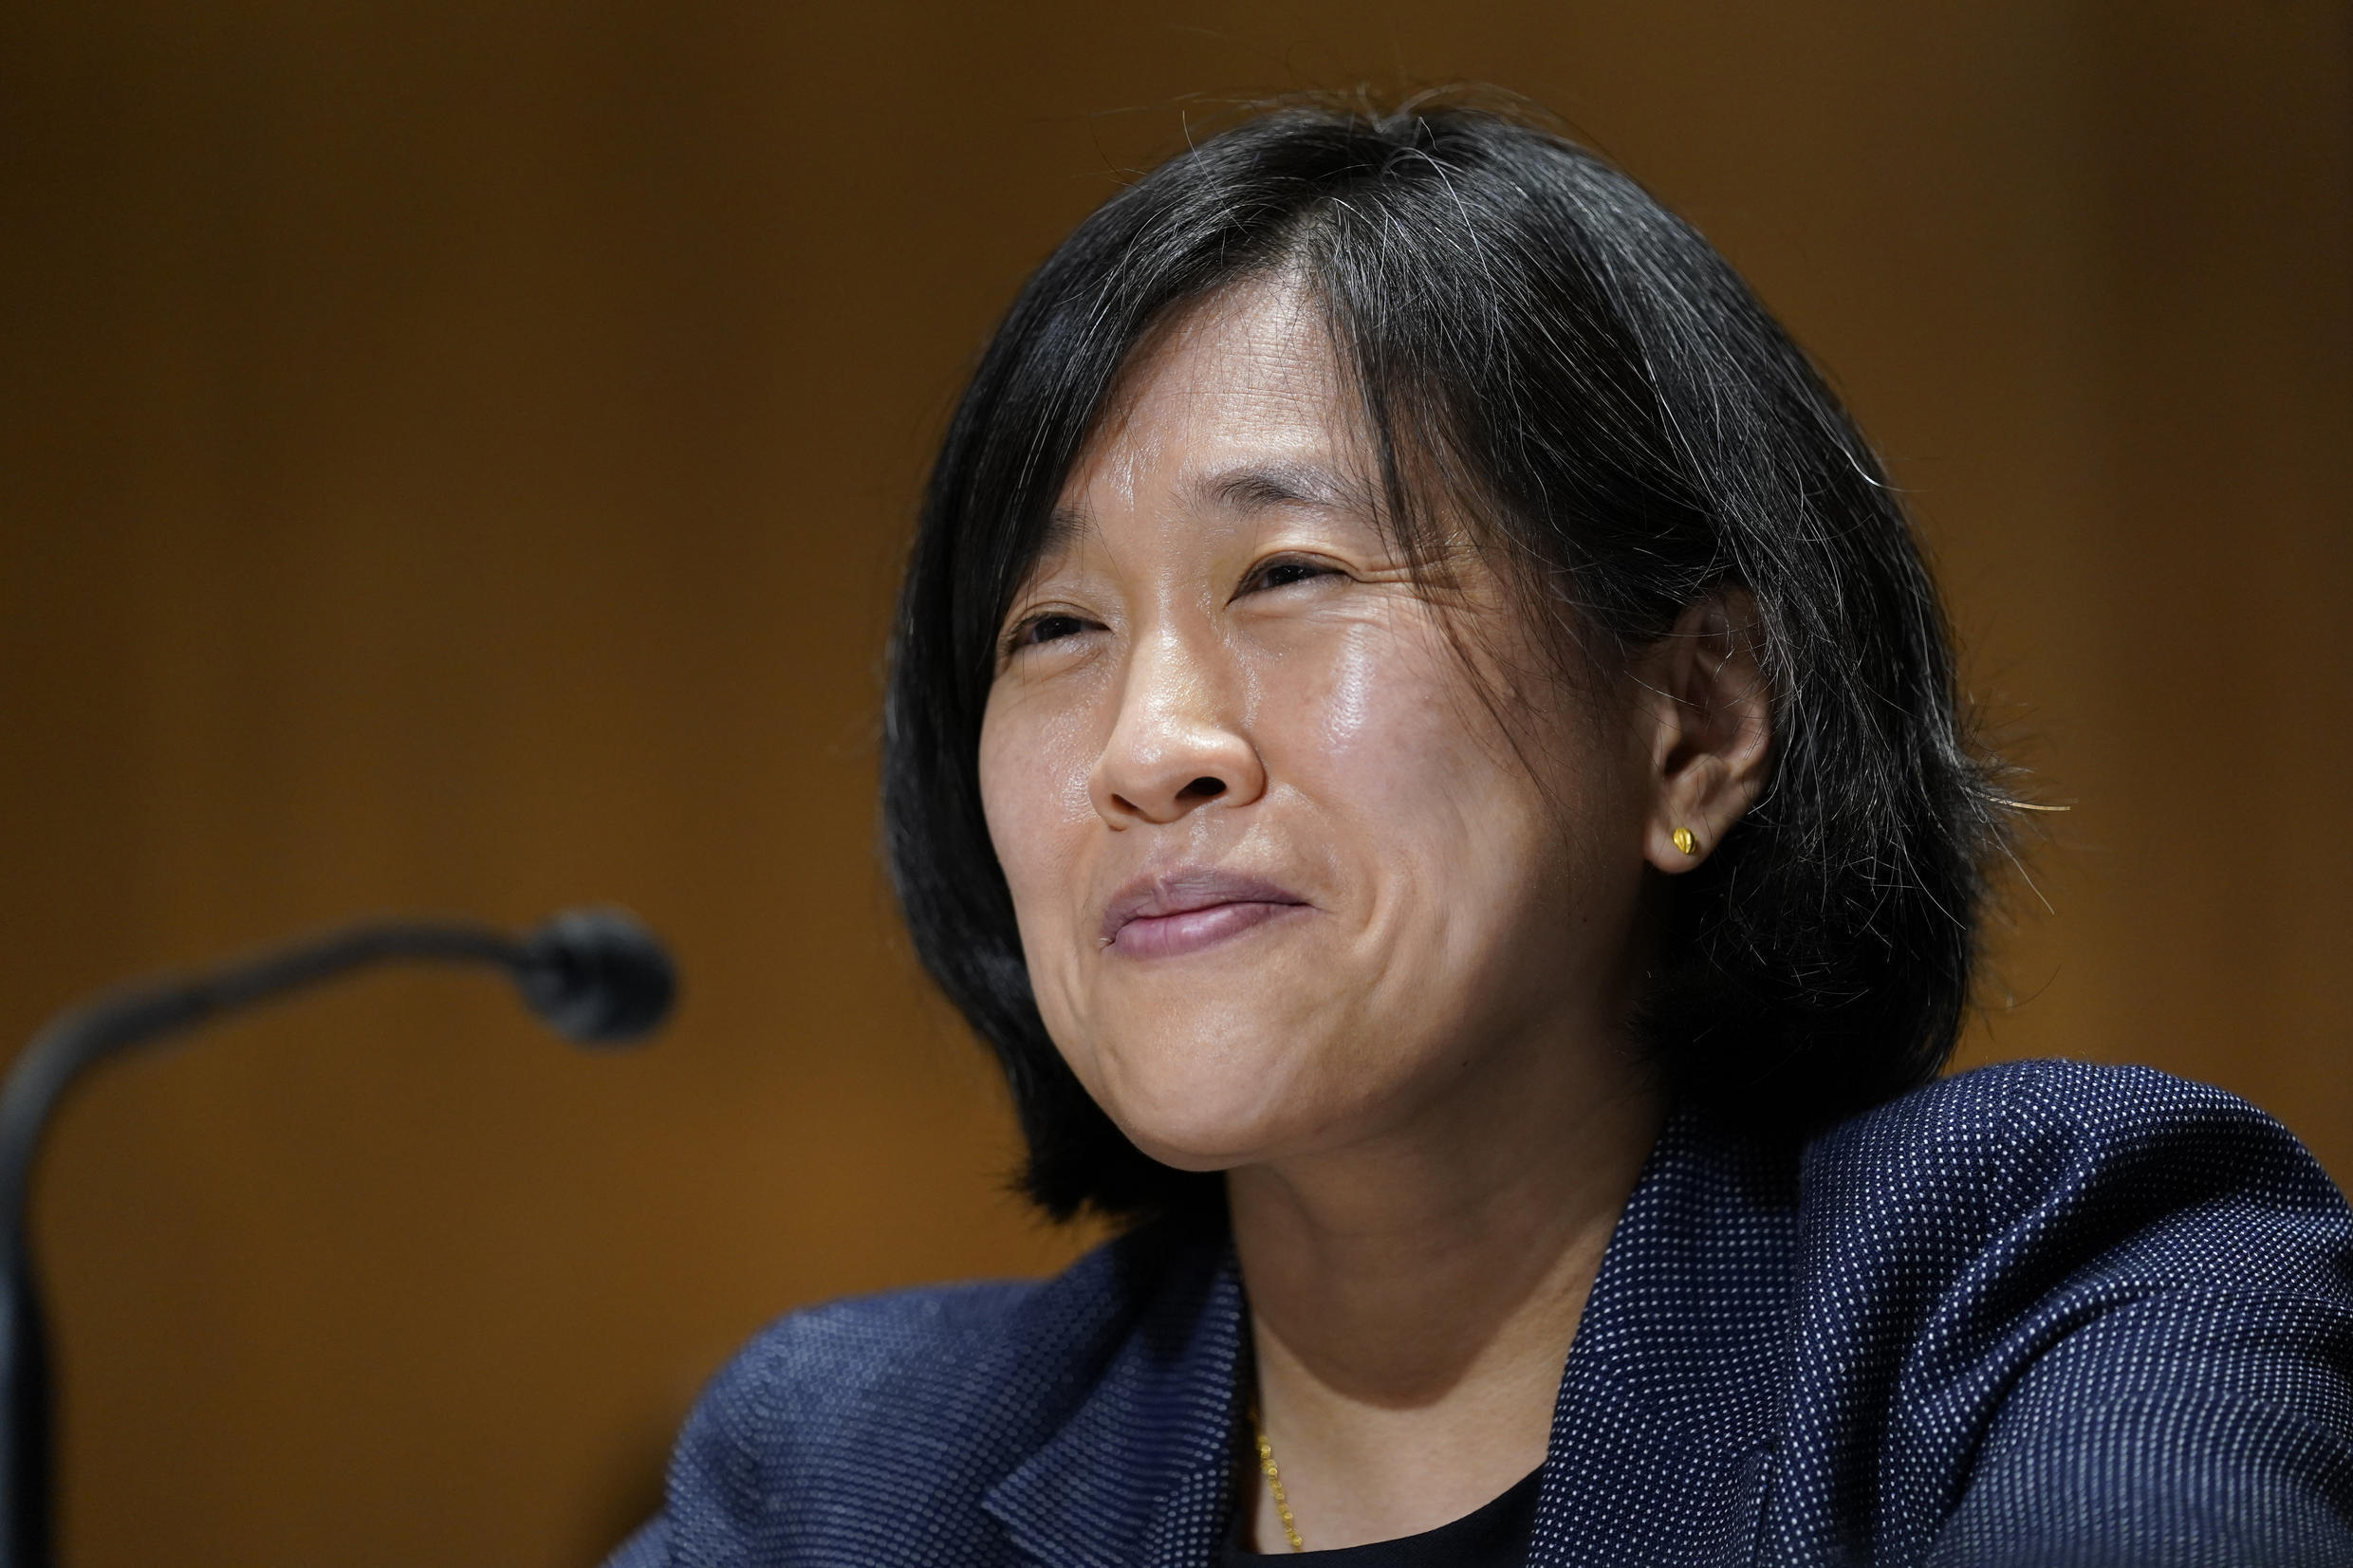 Top US trade negotiator Katherine Tai held phone talks with Chinese Vice Premier Liu He to discuss the countries' 2020 trade pact